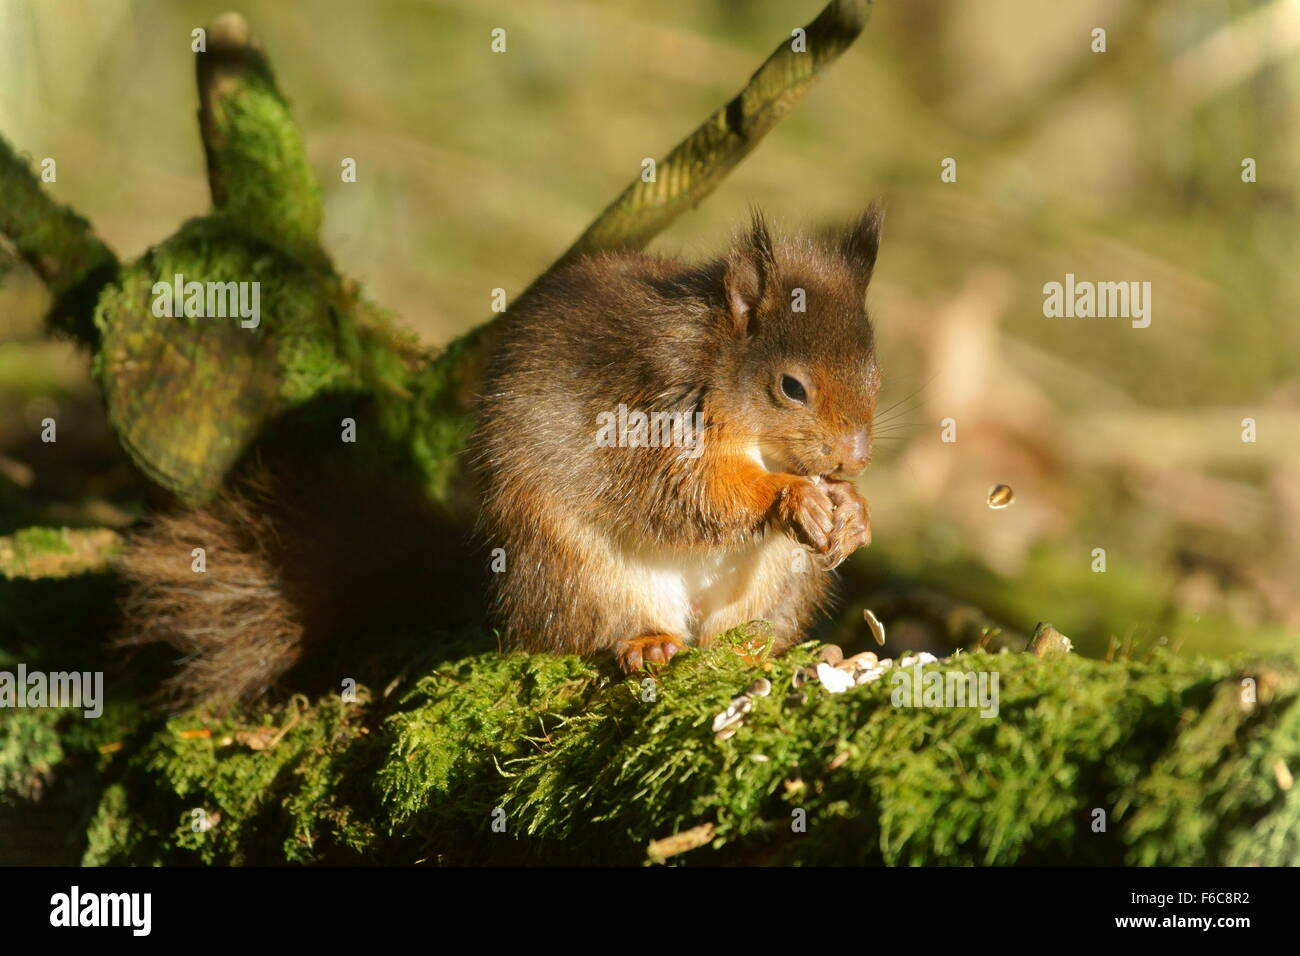 Red squirrel in profile feeding on nuts and seeds - Stock Image